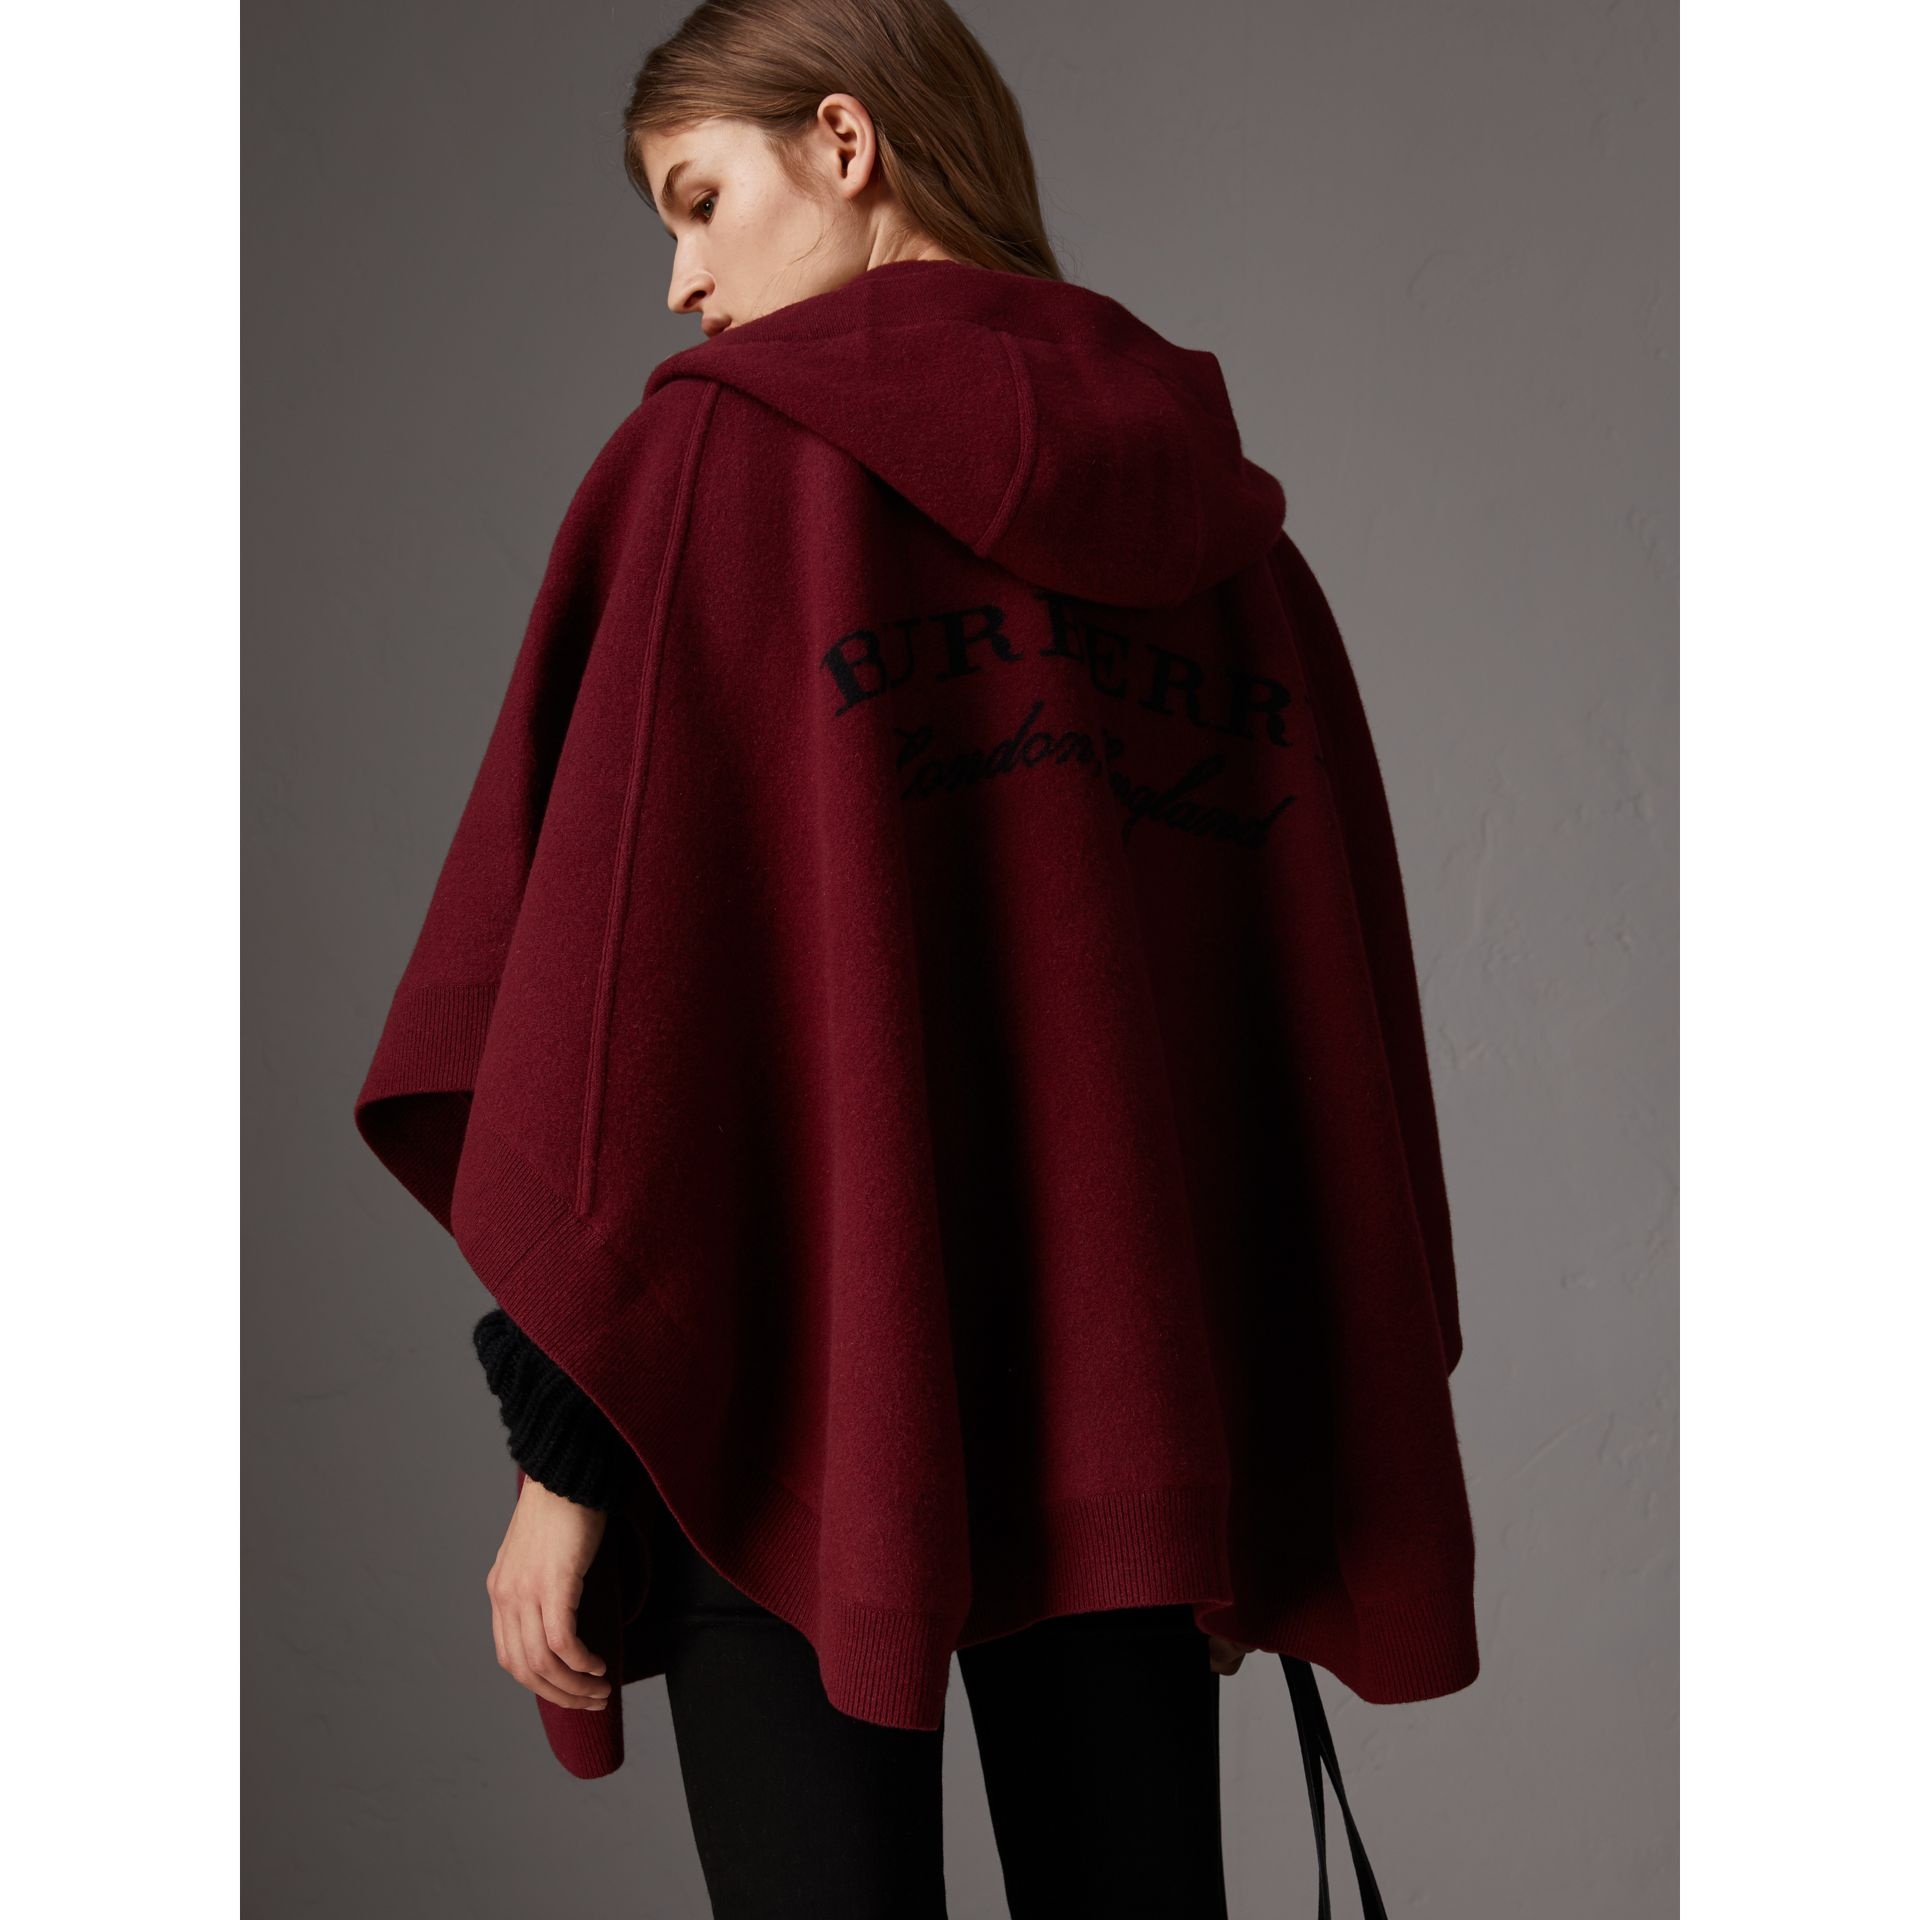 Wool Cashmere Blend Hooded Poncho in Deep Red - Women | Burberry - gallery image 2